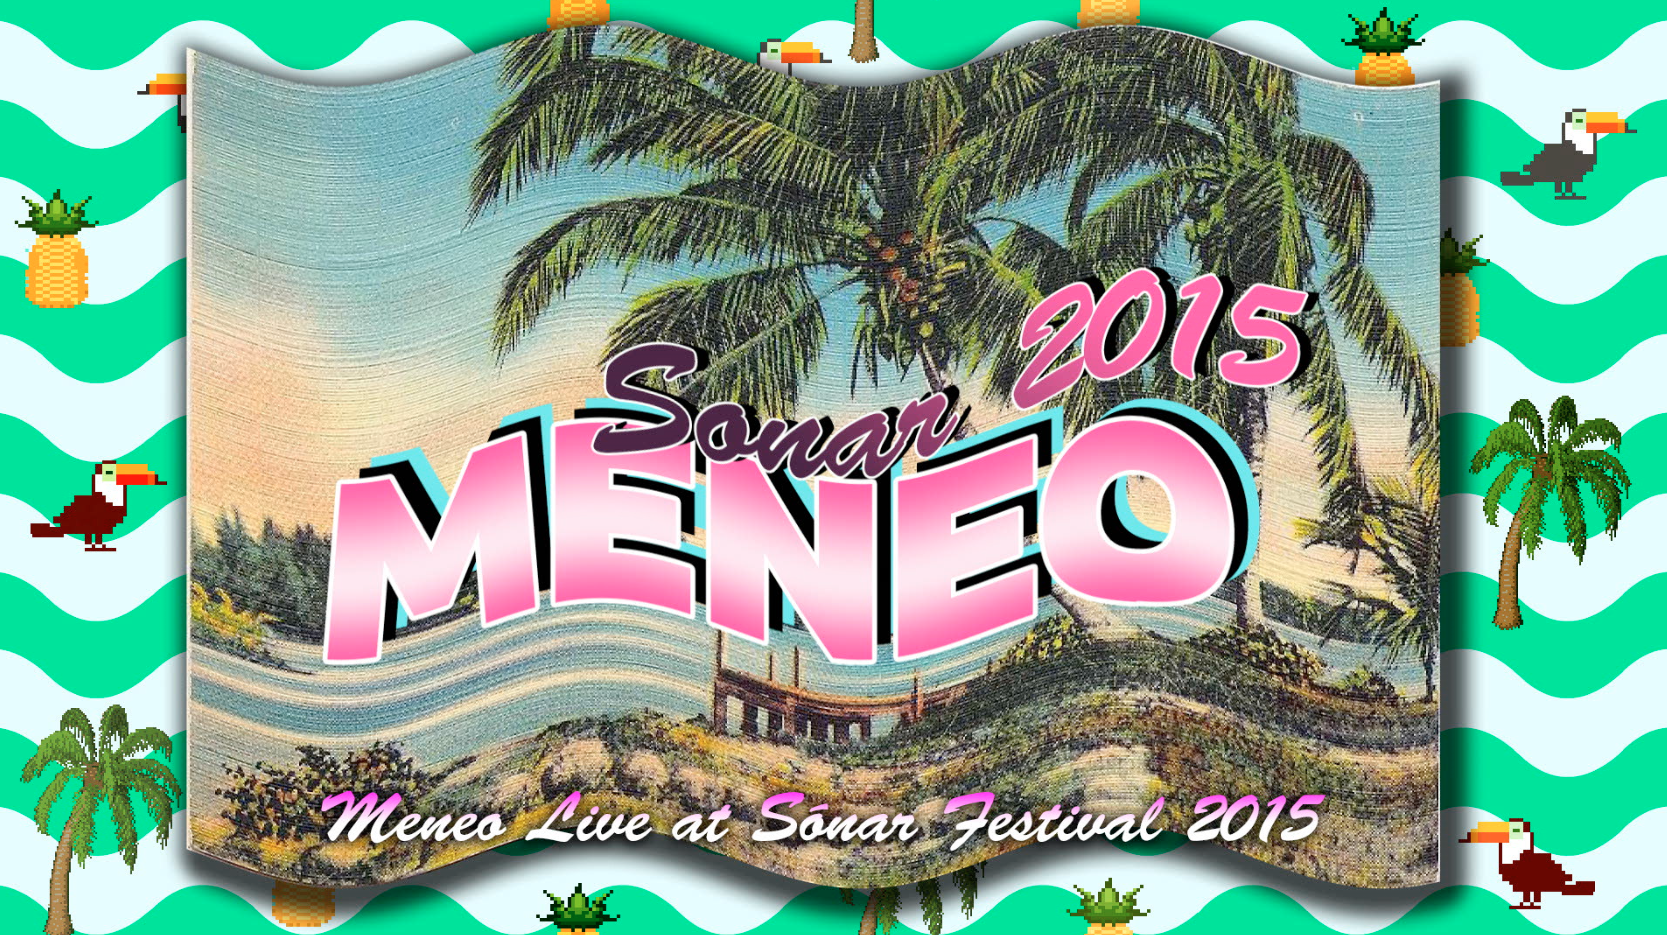 MENEO and VJ ENTTER live at Sonar 2015